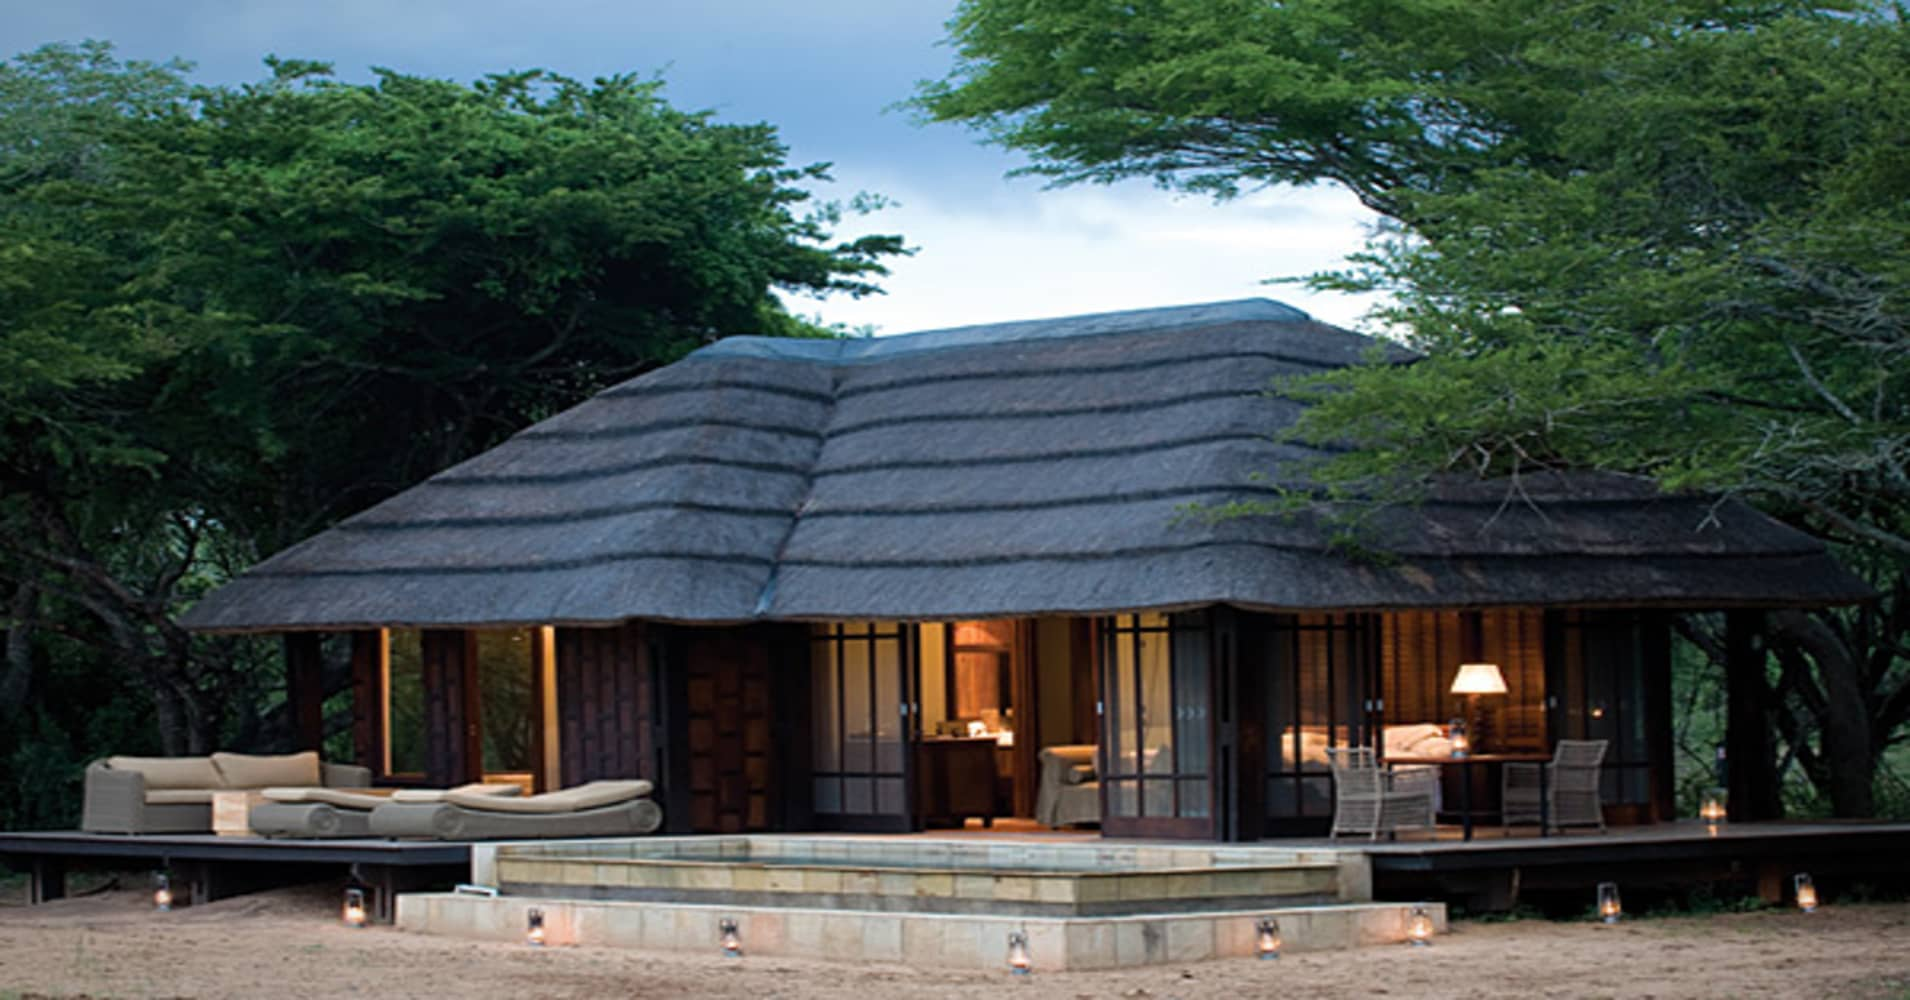 The Homestead Villa comprises four suites, expansive wilderness views, an eternity pool, a private ranger, butler and chef, plus your own 4x4 safari vehicle. Rates range from $3,778 to $5,101 a night, with a limit of four guests. Phinda.com Phinda sits on 56,800 acres of wilderness near South Africa's eastern coast. Africa's Big Five game animals (lion, leopard, elephant, buffalo and rhino) roam the property, along with 415 bird species. First fly from Johannesburg to Richards Bay, then board a